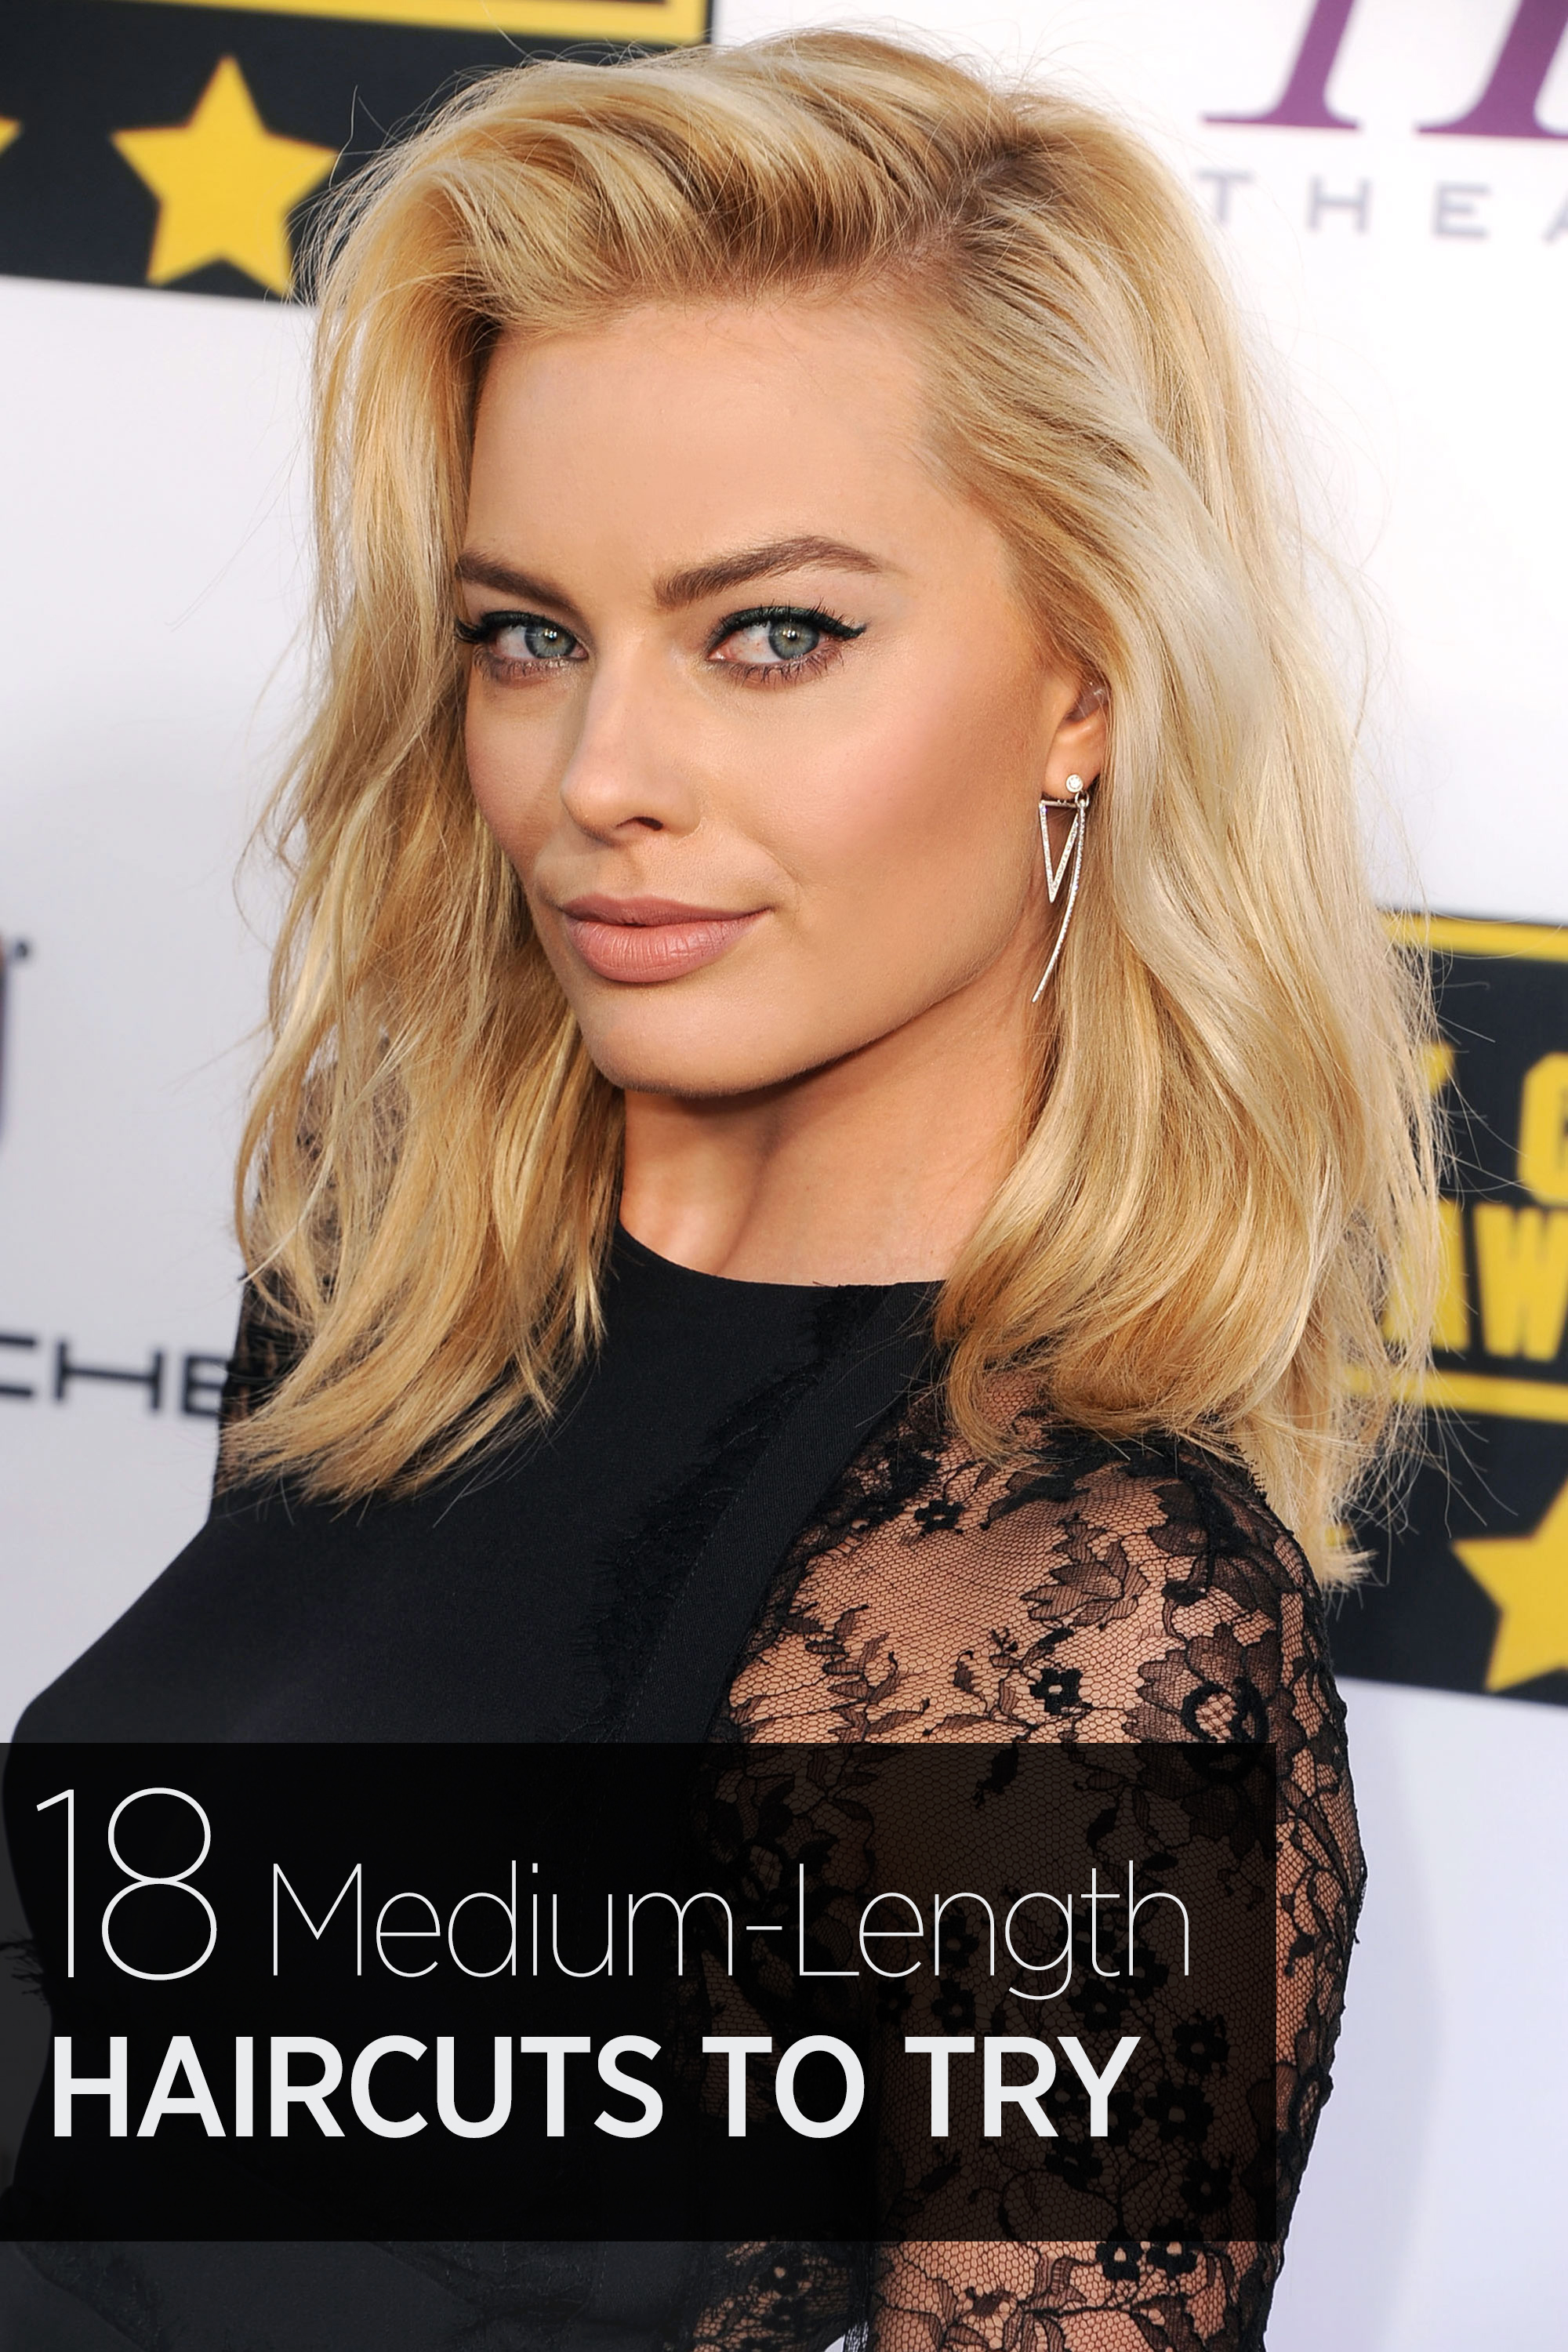 Swell 33 Best Medium Hairstyles Celebrities With Shoulder Length Haircuts Short Hairstyles Gunalazisus